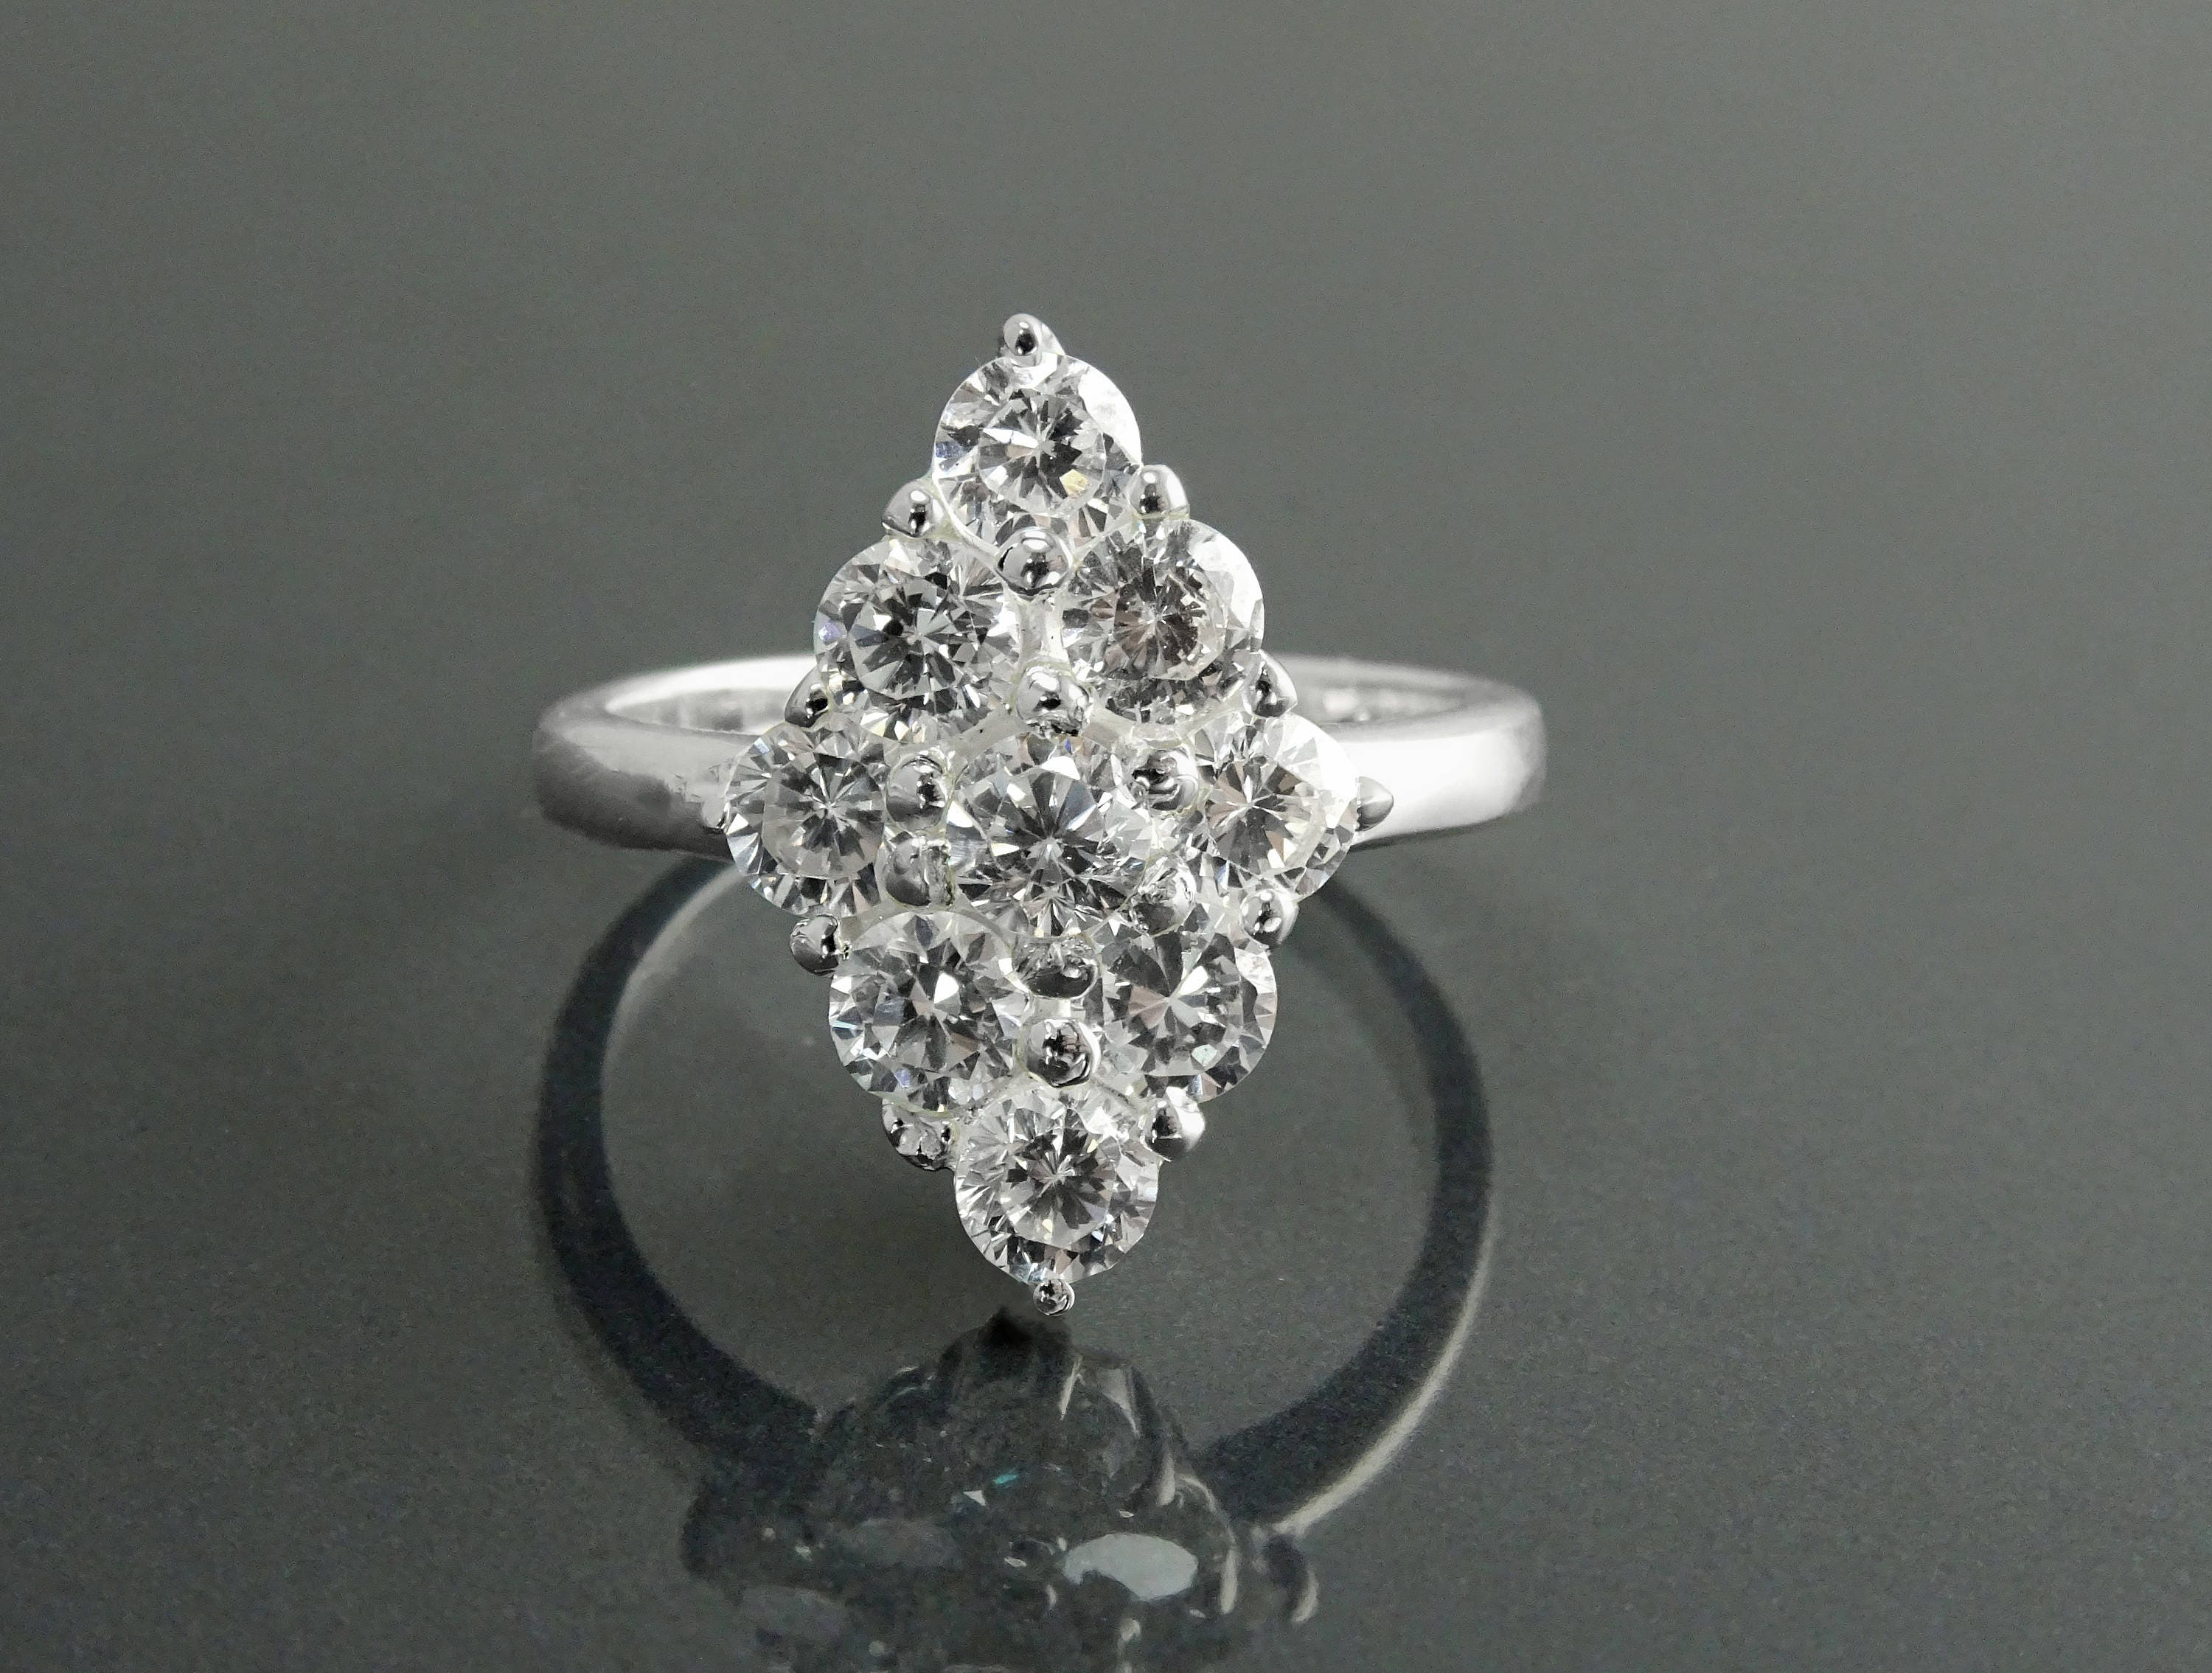 designs diamond ring kwon equilibrium baguette marquise jennie products rings